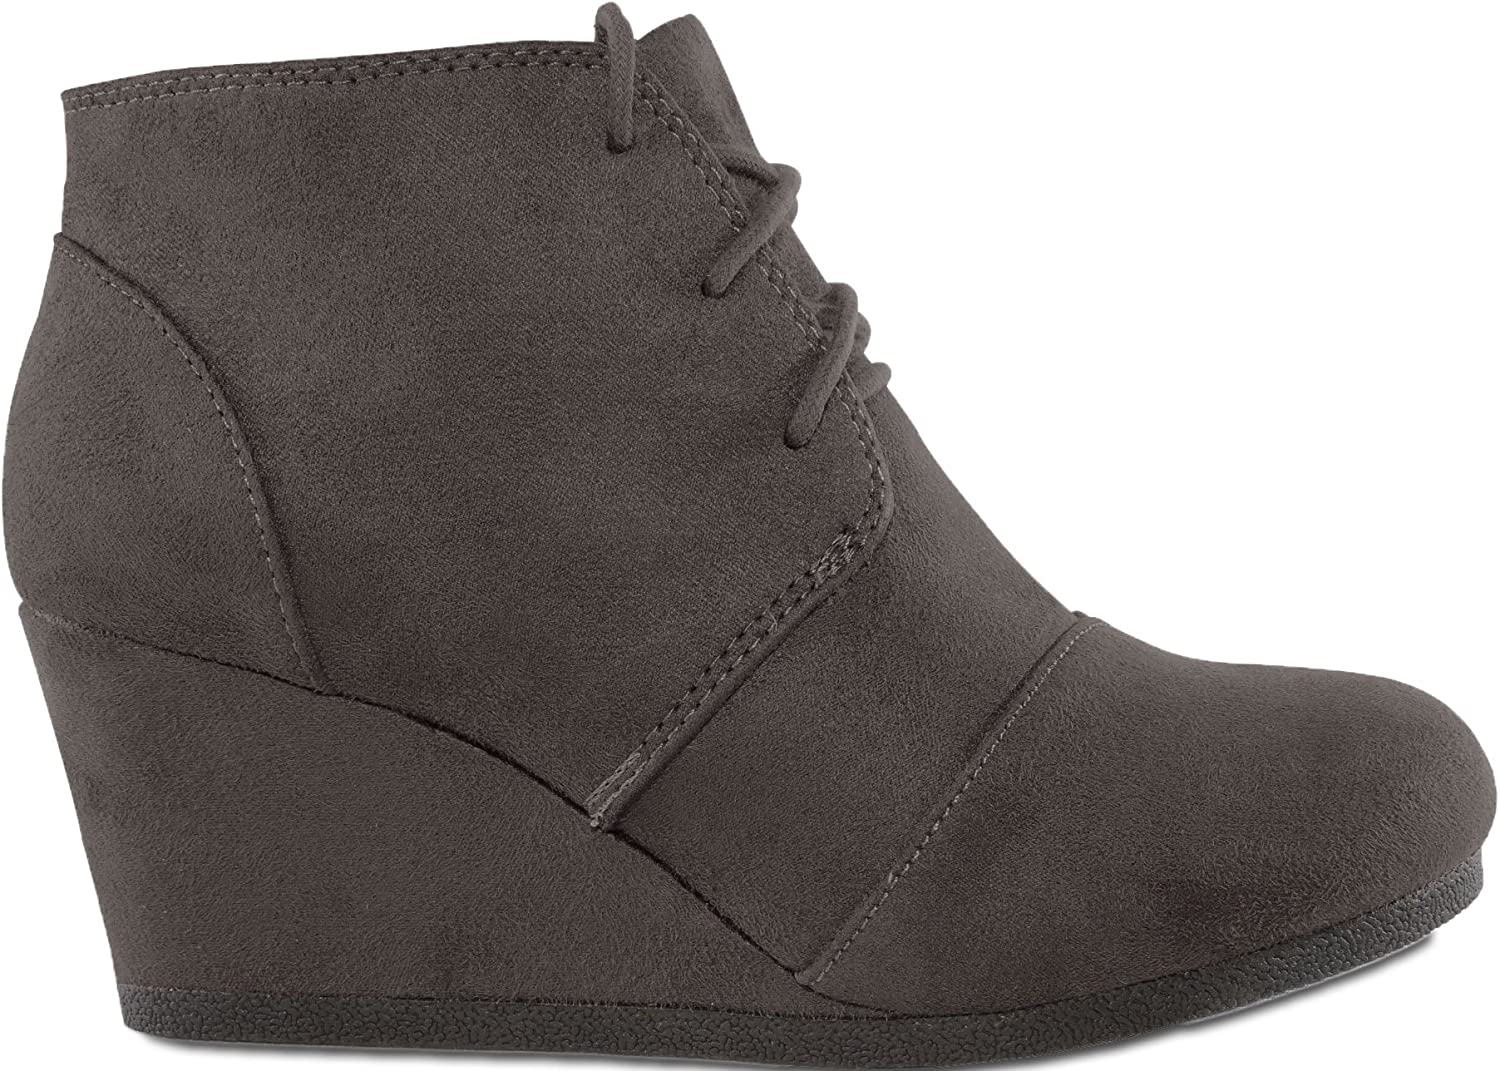 MARCOREPUBLIC Marco Republic Galaxy Womens Wedge Boots